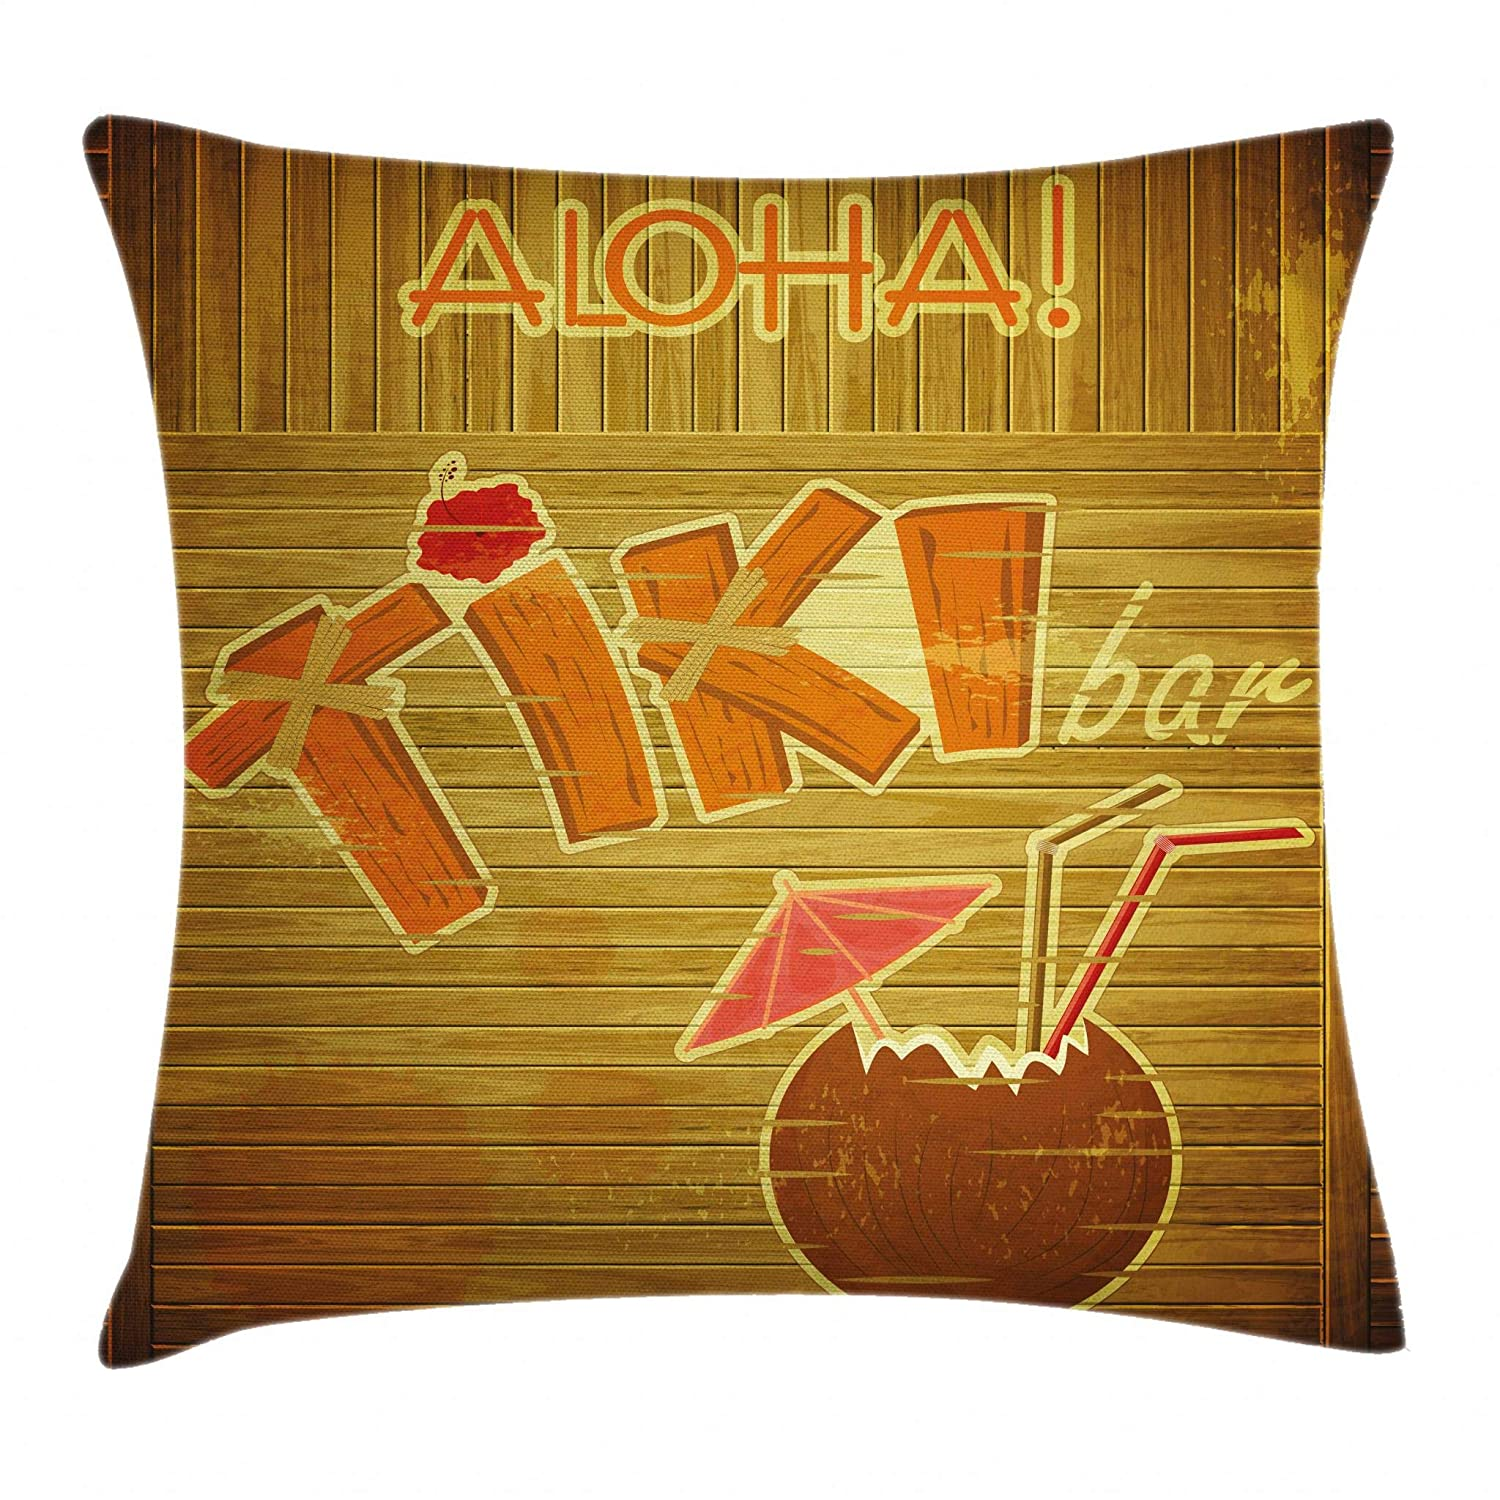 Ambesonne Tiki Bar Decor Throw Pillow Cushion Cover, Wooden Planks Wall with Styled Tiki Bar Text Cocktail Hibiscus Aloha, Decorative Square Accent Pillow Case, 16 X 16 Inches, Brown Orange Pink min_37742_16X16